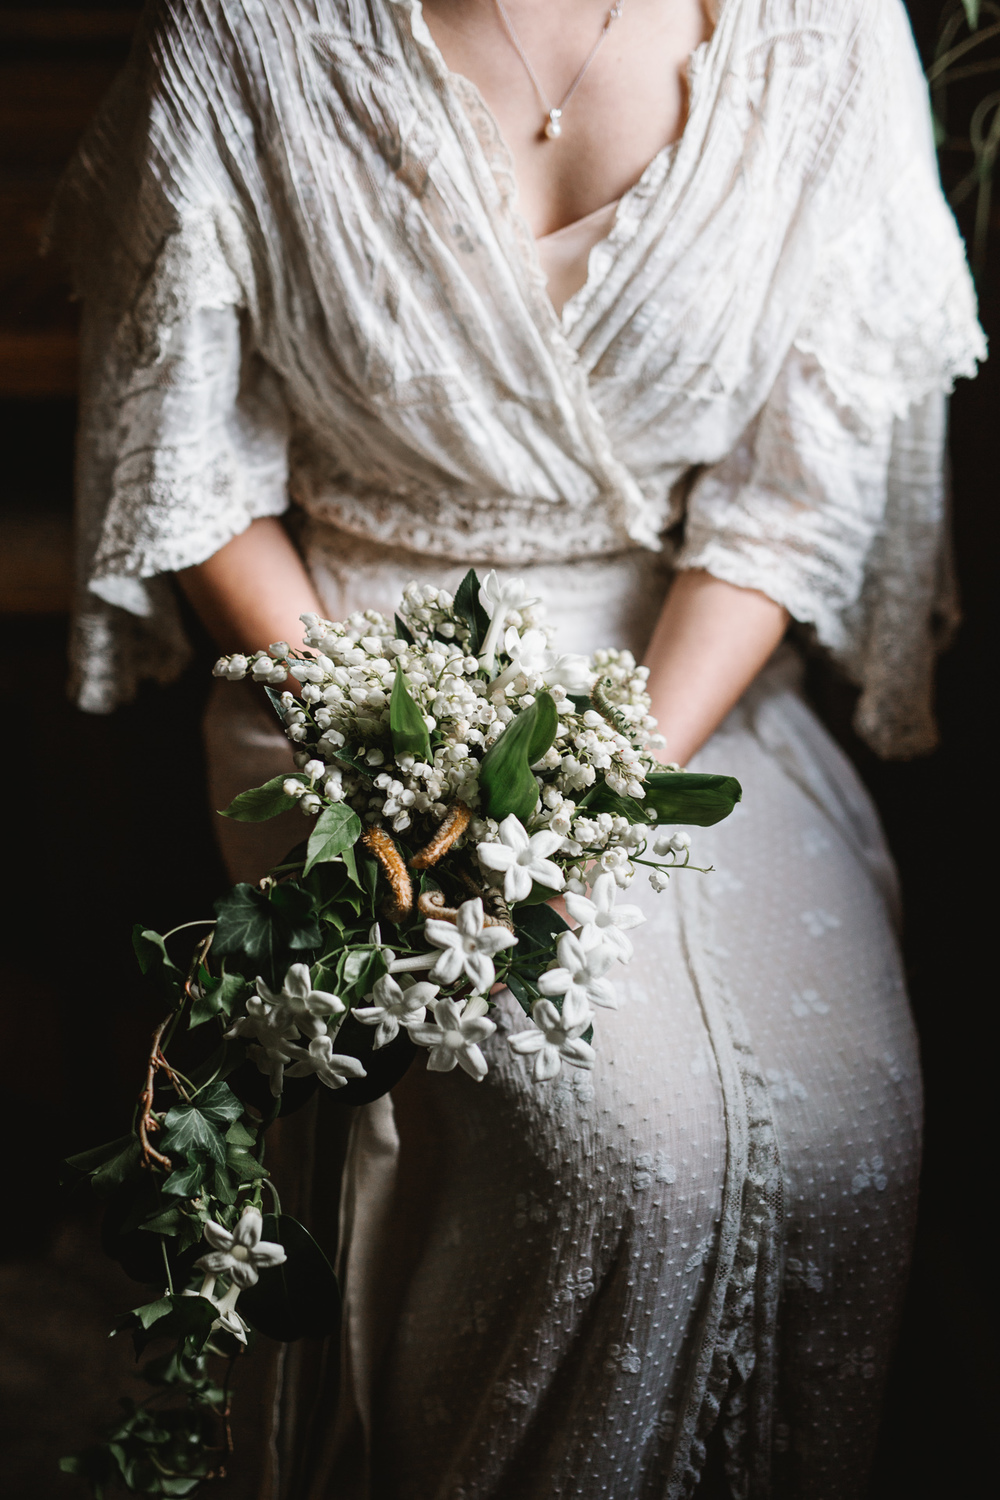 photography by Jess Hunter, intimate Portland wedding photographer, botanical inspired wedding in Portland, OR at a pioneer church, vintage lace wedding dress, hipster Portland wedding, elopement in the forests of Oregon, forest bride, vintage bridal style, Jessica L Hunter, Seattle elopement photographer, PDX wedding, vintage Pacific Northwest wedding, artistic wedding photography, emotive wedding photographer, floral wisteria garland by Ponderosa and Thyme